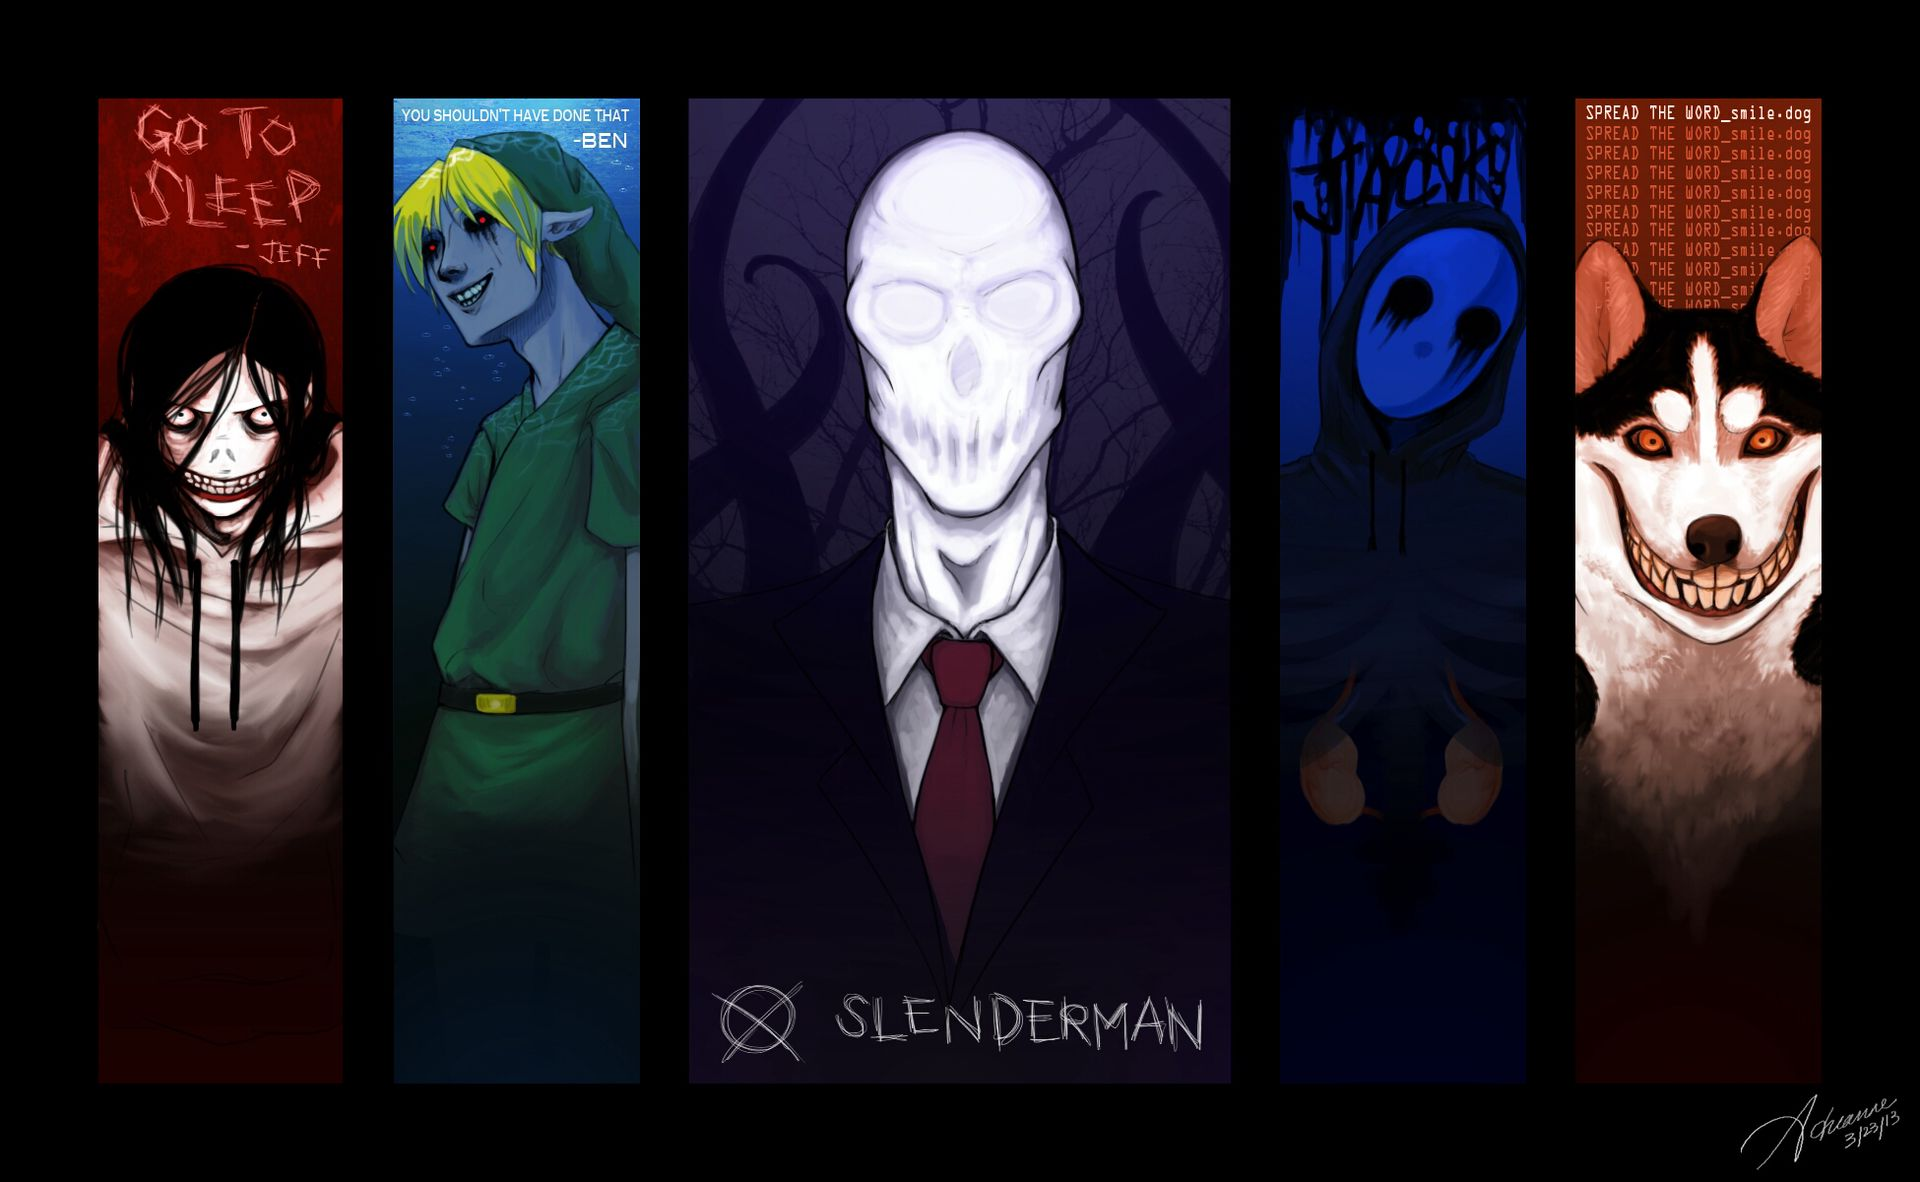 Creepypasta Boyfriend Scenarios - How You Met - Wattpad